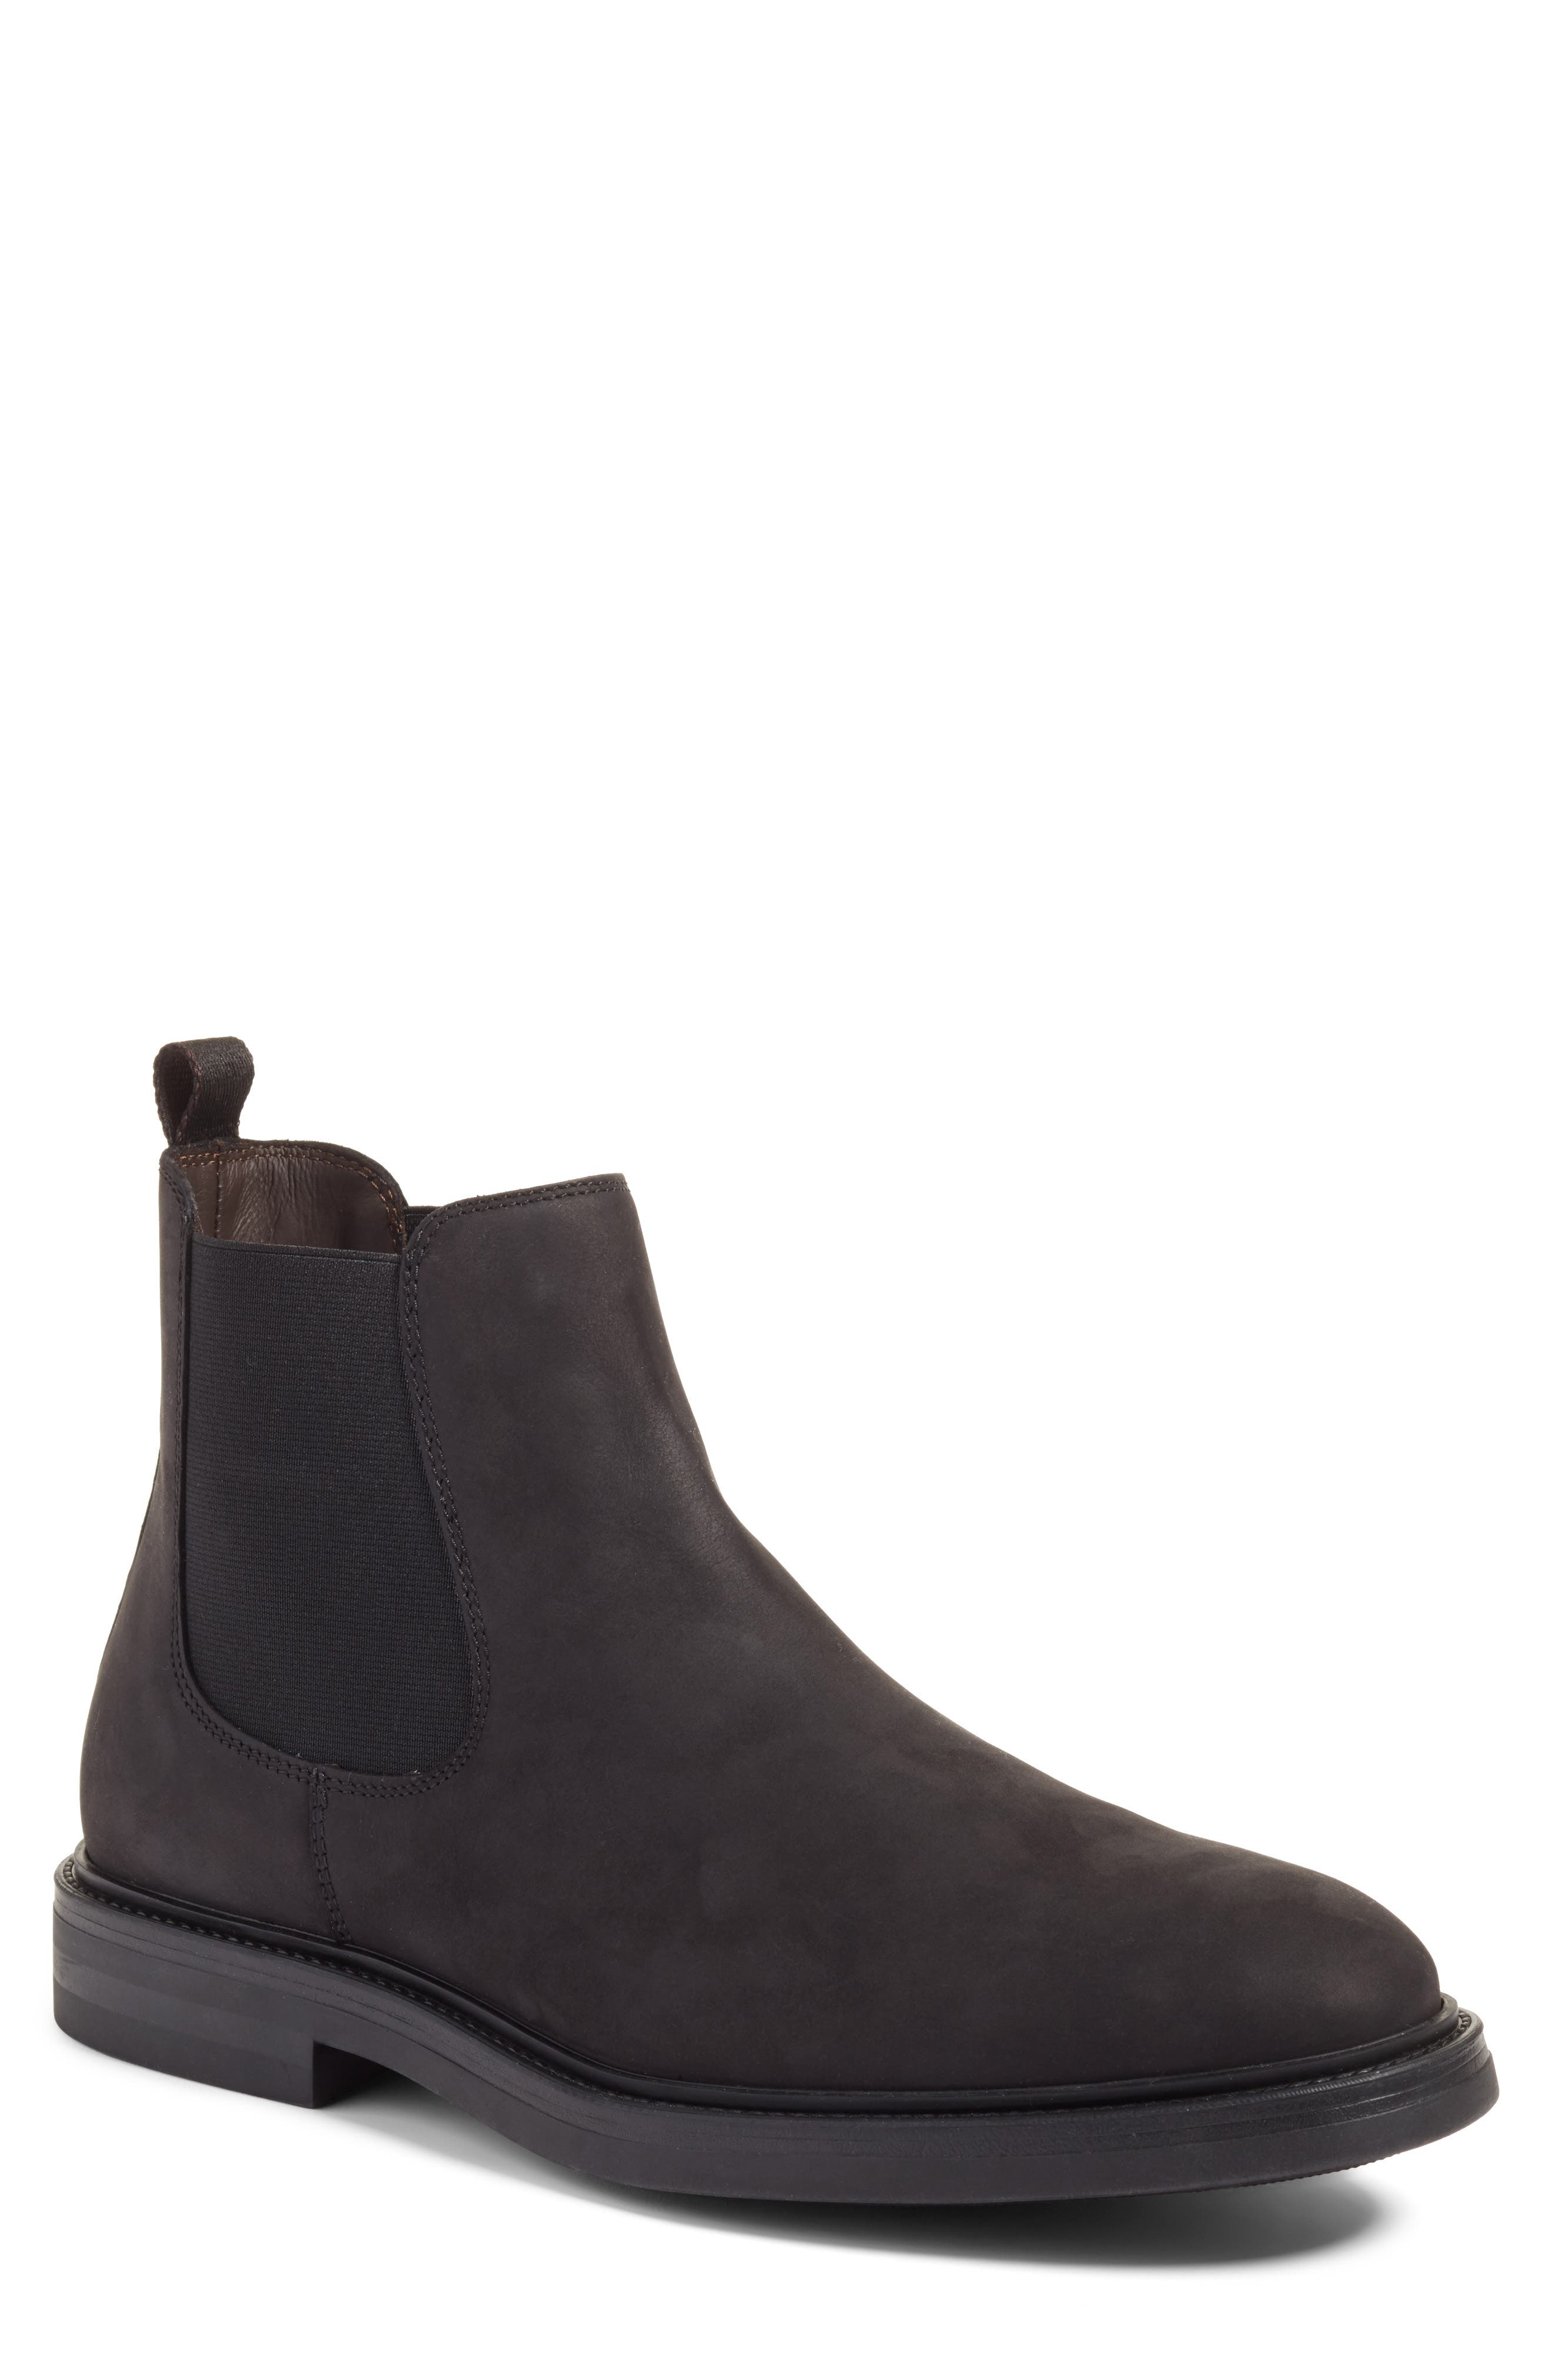 Chelsea Boot,                             Main thumbnail 1, color,                             002